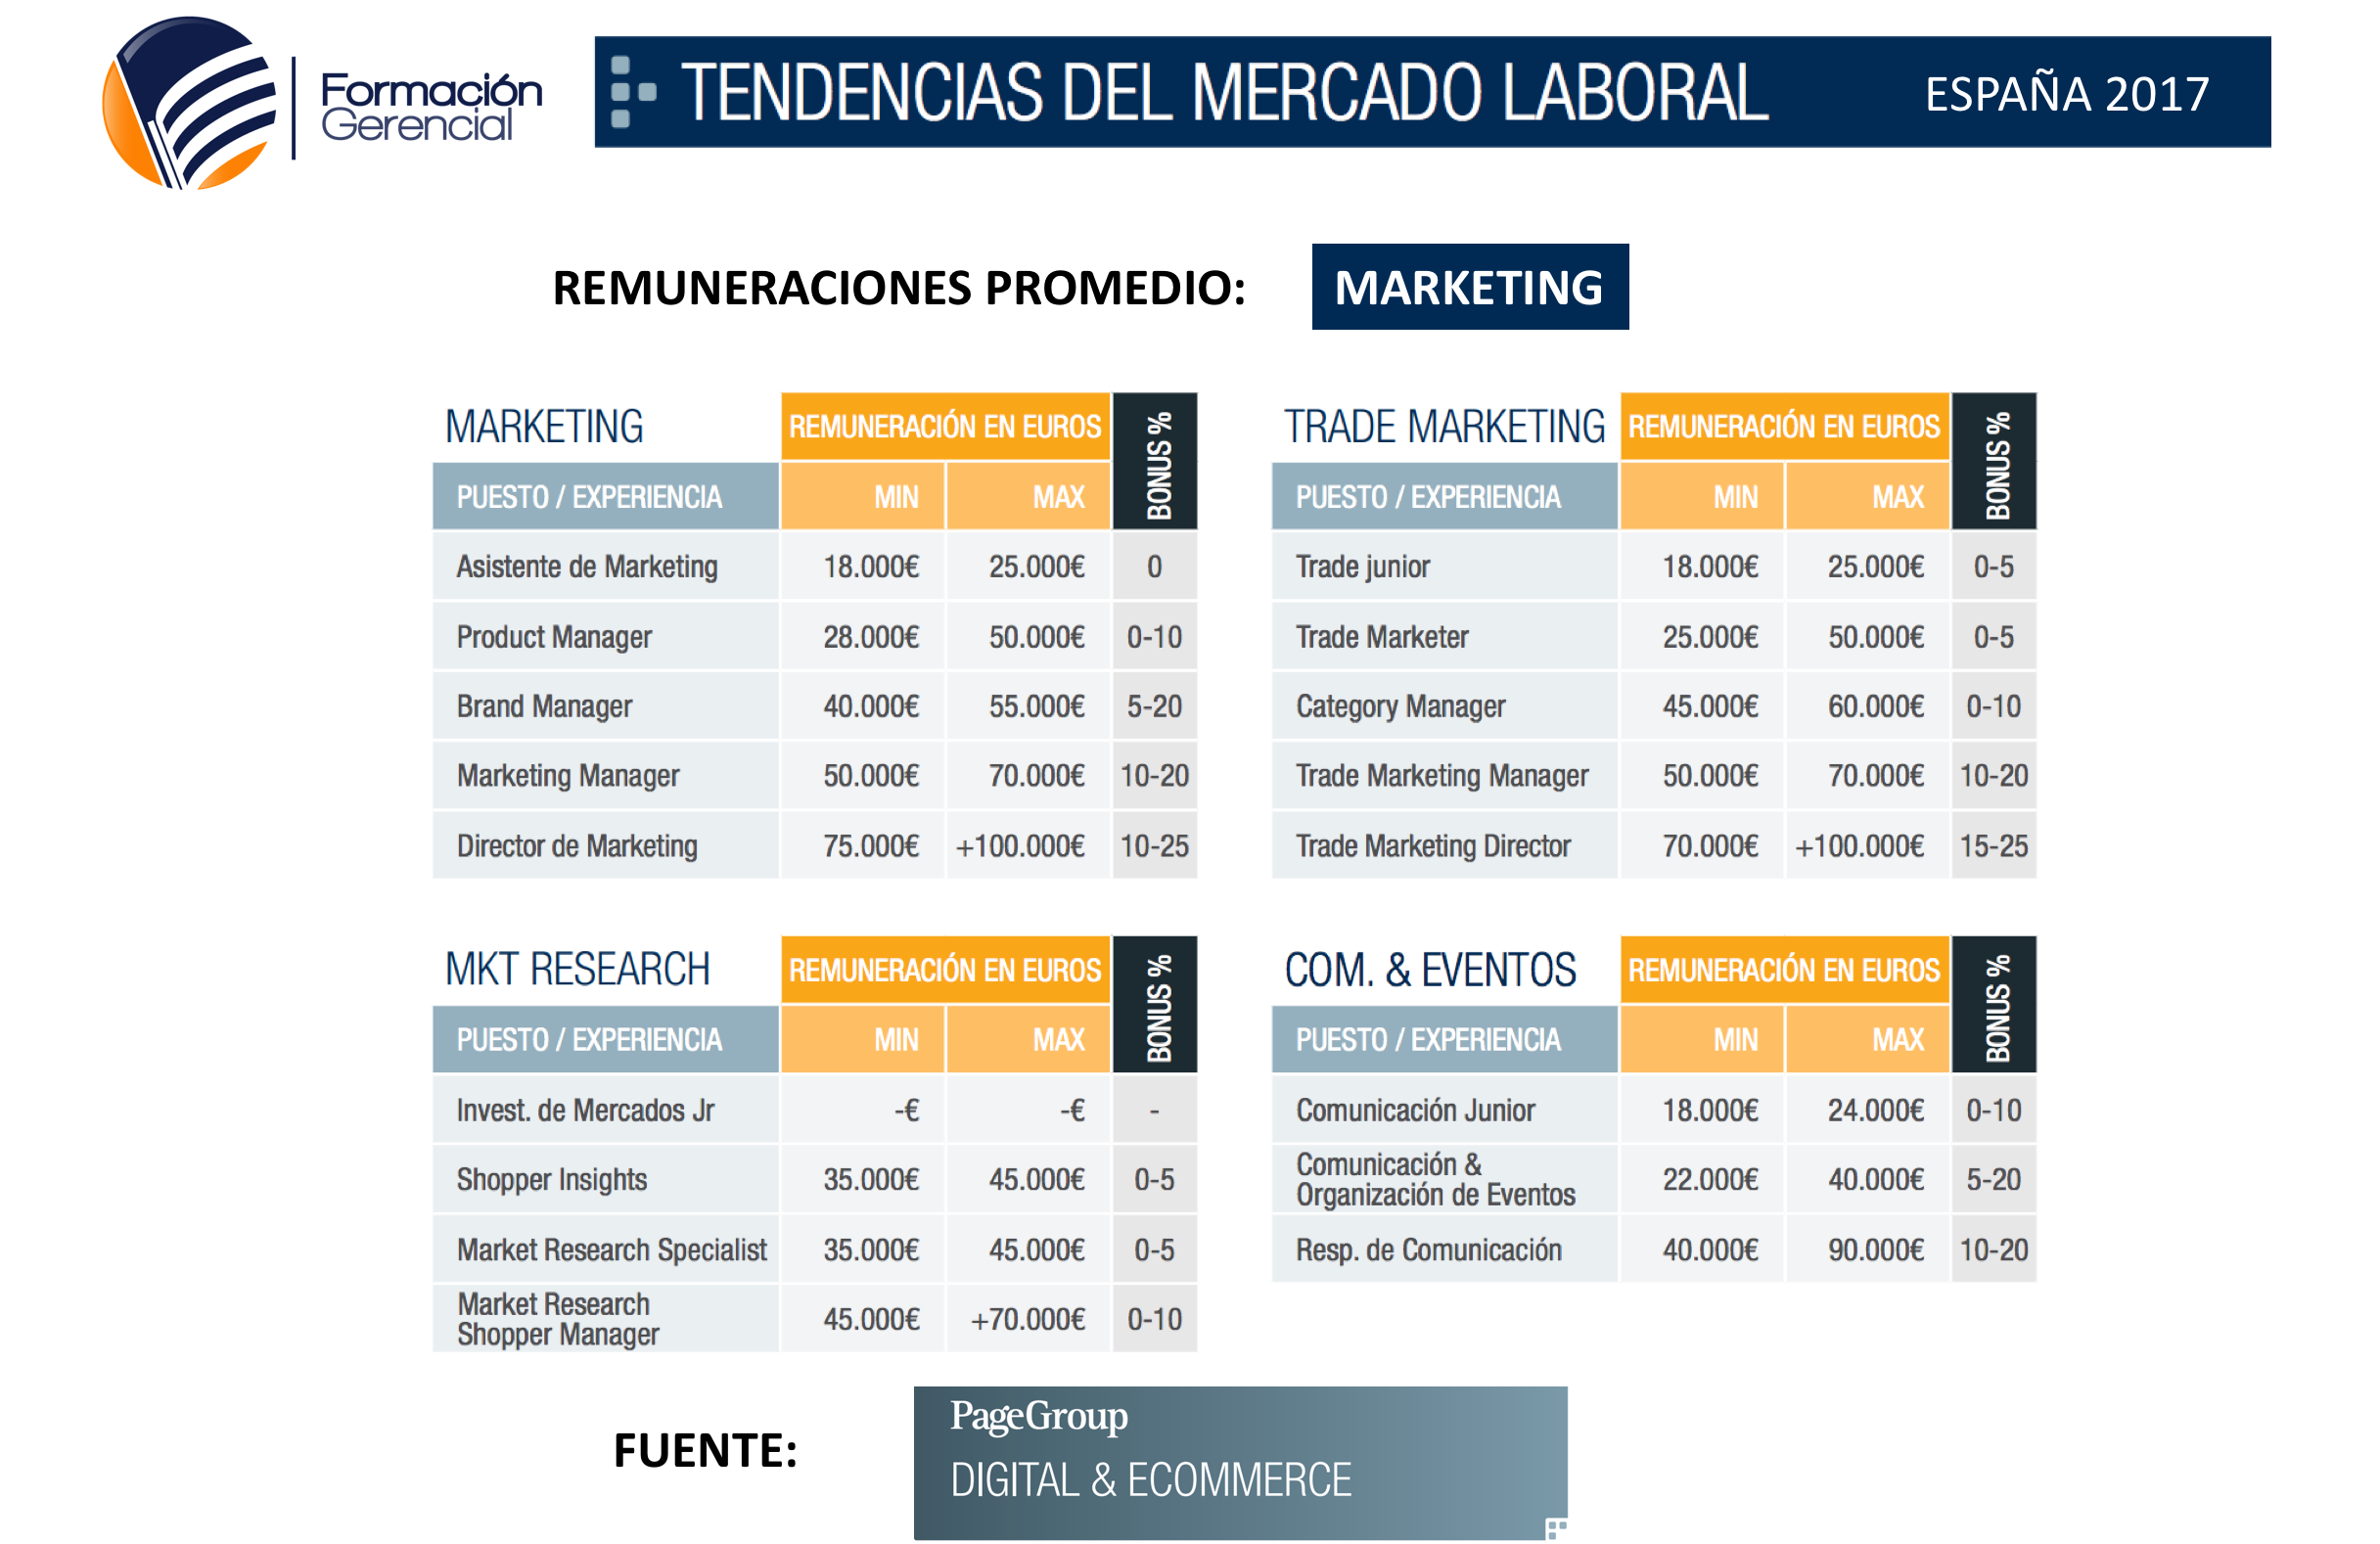 Tendencias Mercado Laboral Marketing 2017